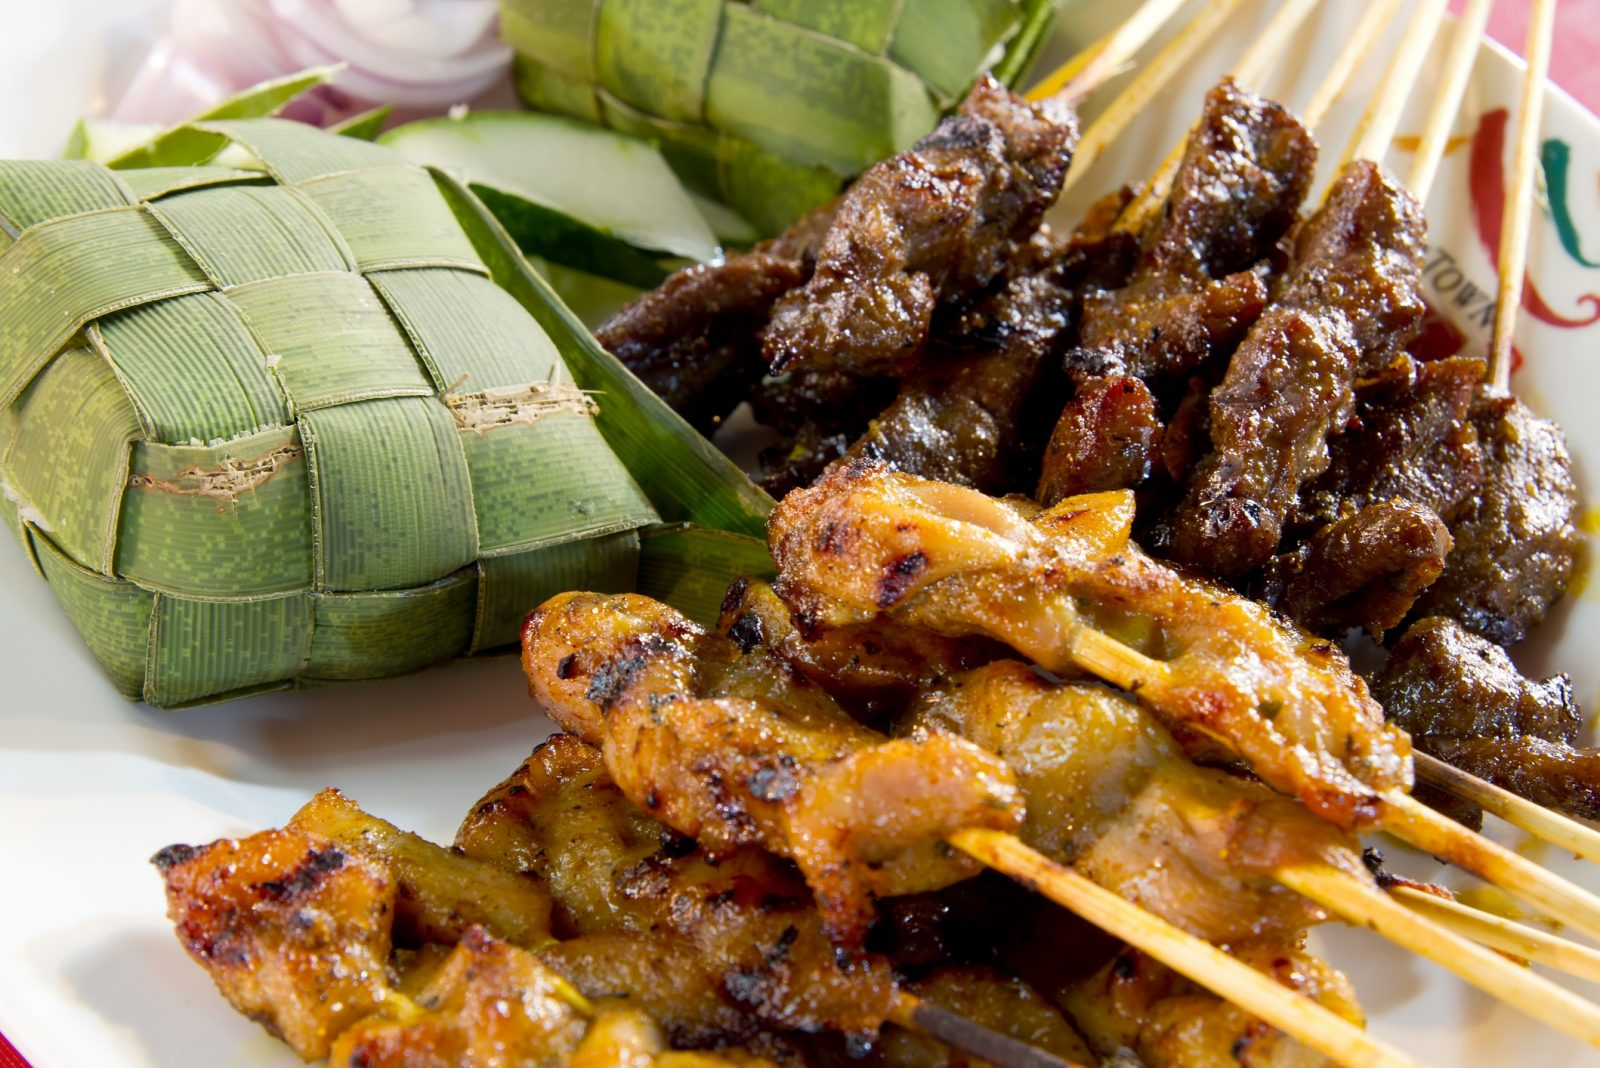 Chicken-and-Lamb-Satay-Skewers-with-Ketupat-Rice-Wrapped-in-Coconut-Leaf_ed